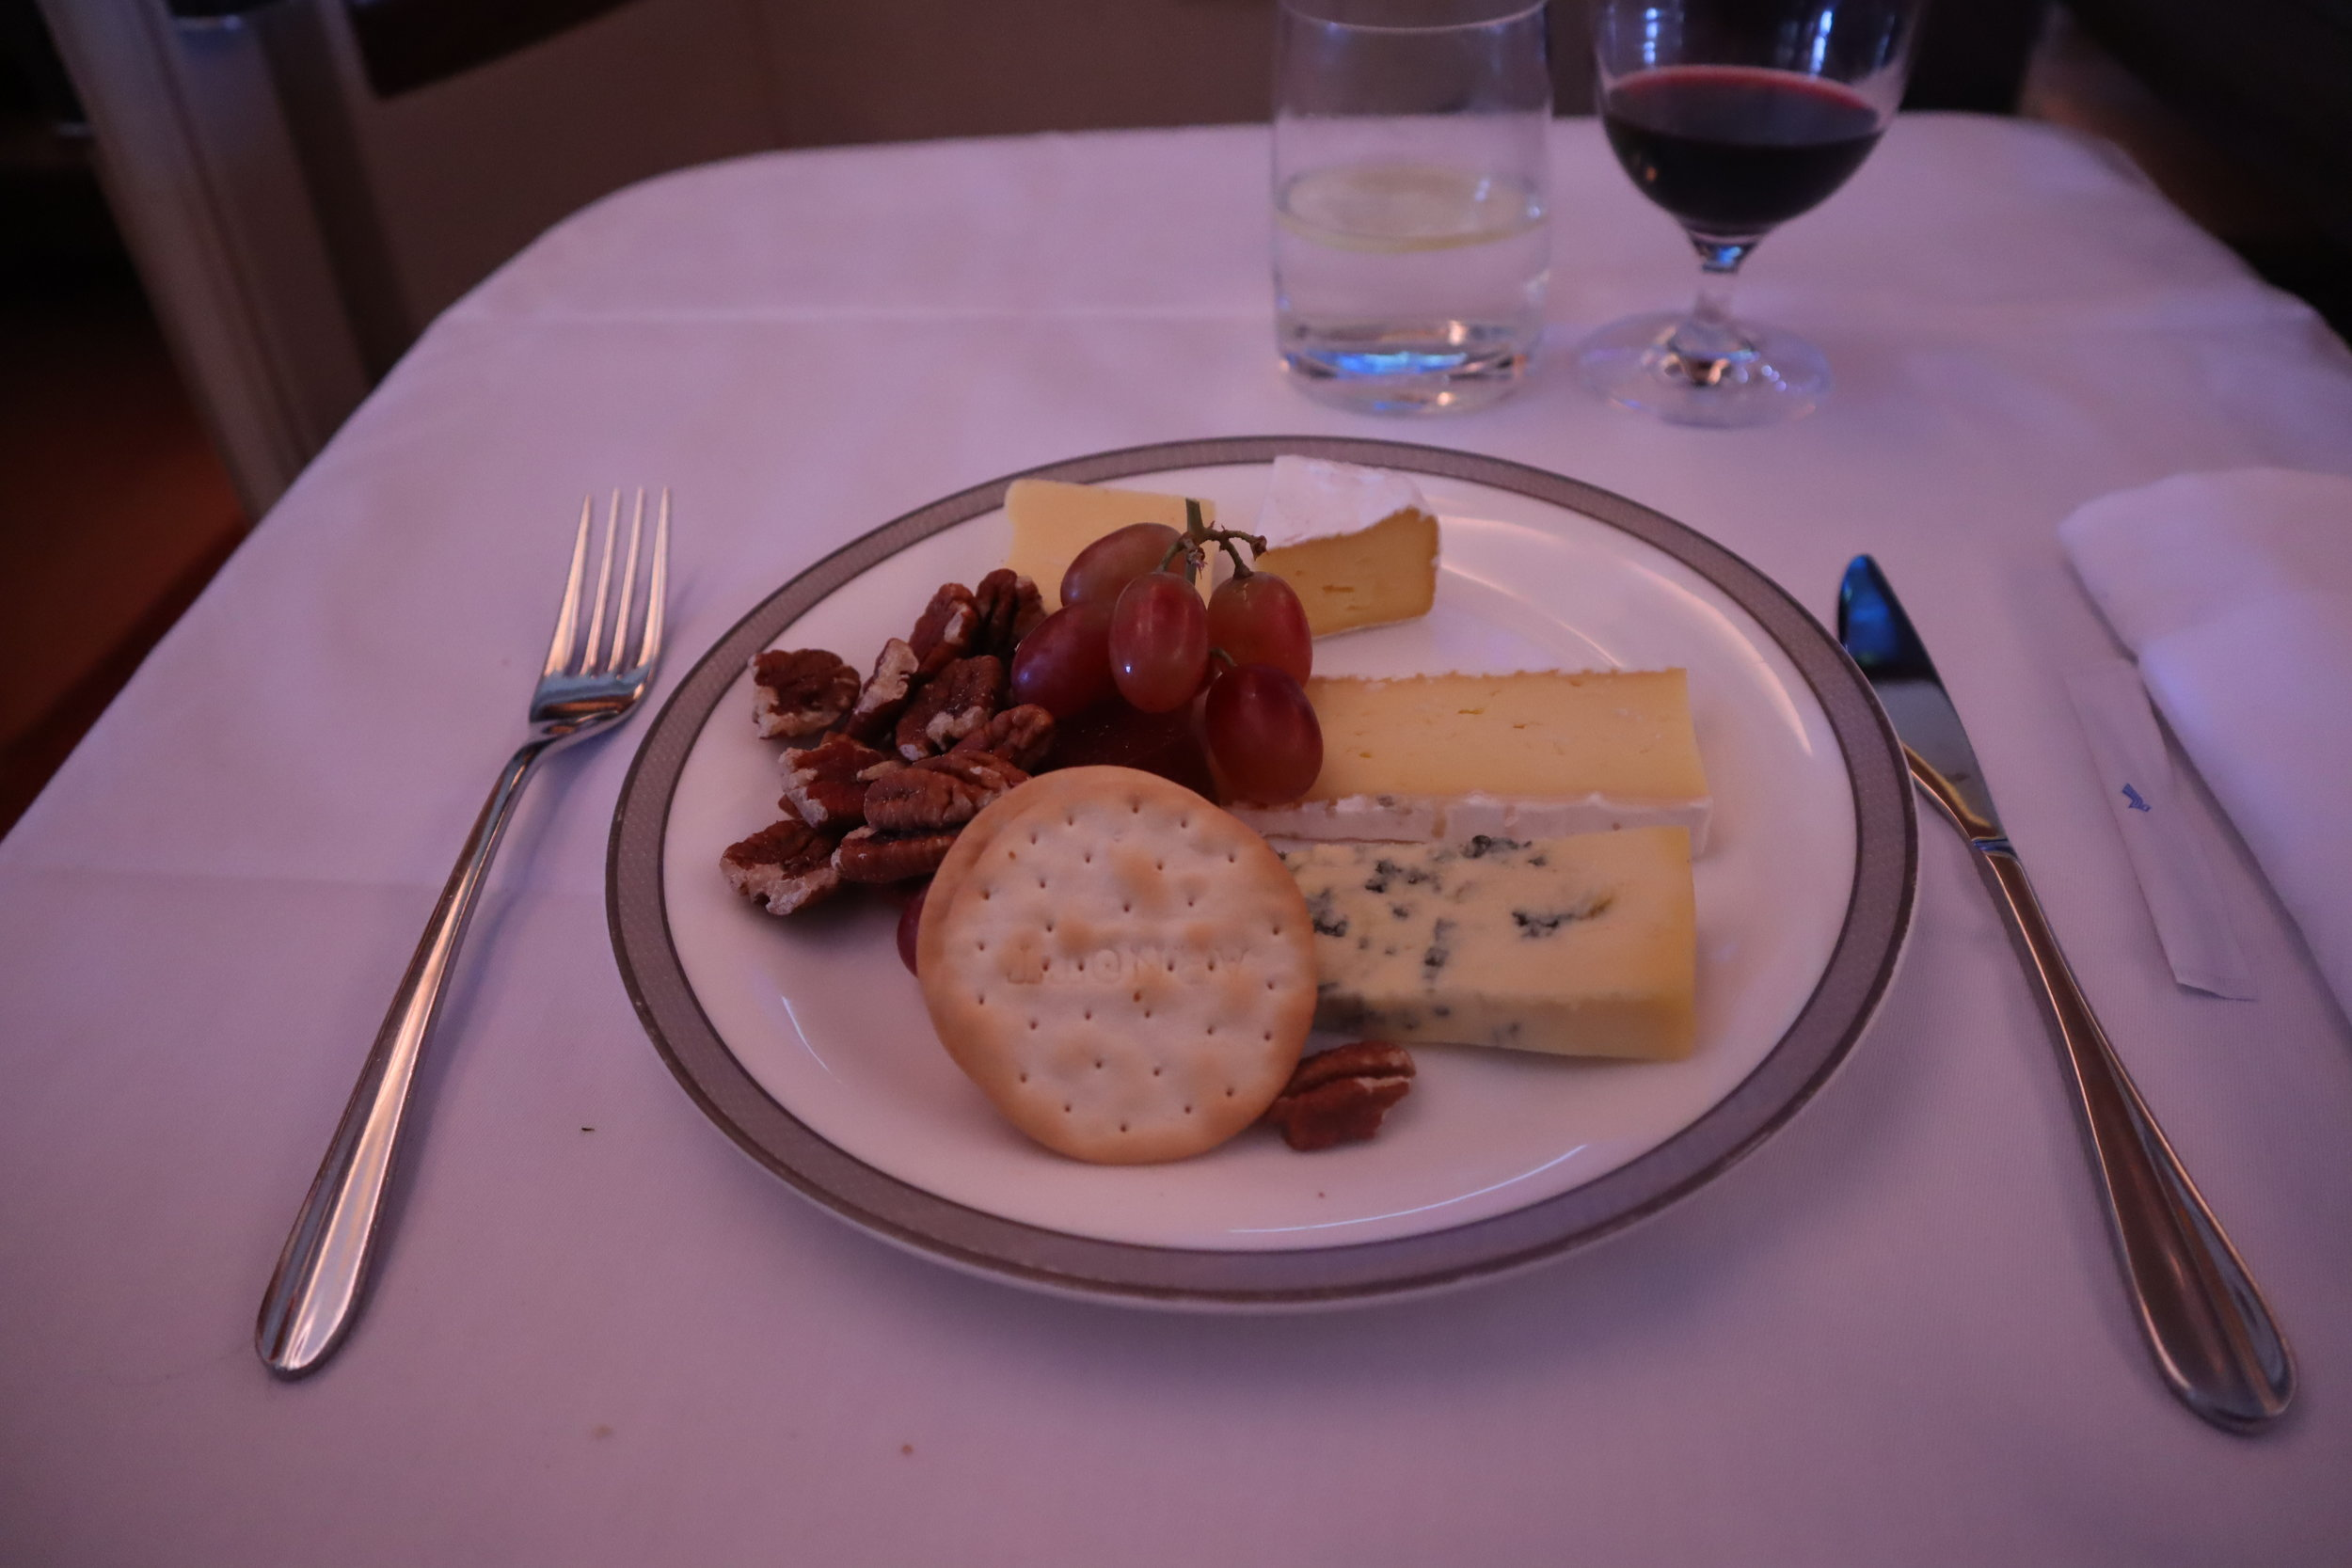 Singapore Airlines Suites Class – Cheese plate